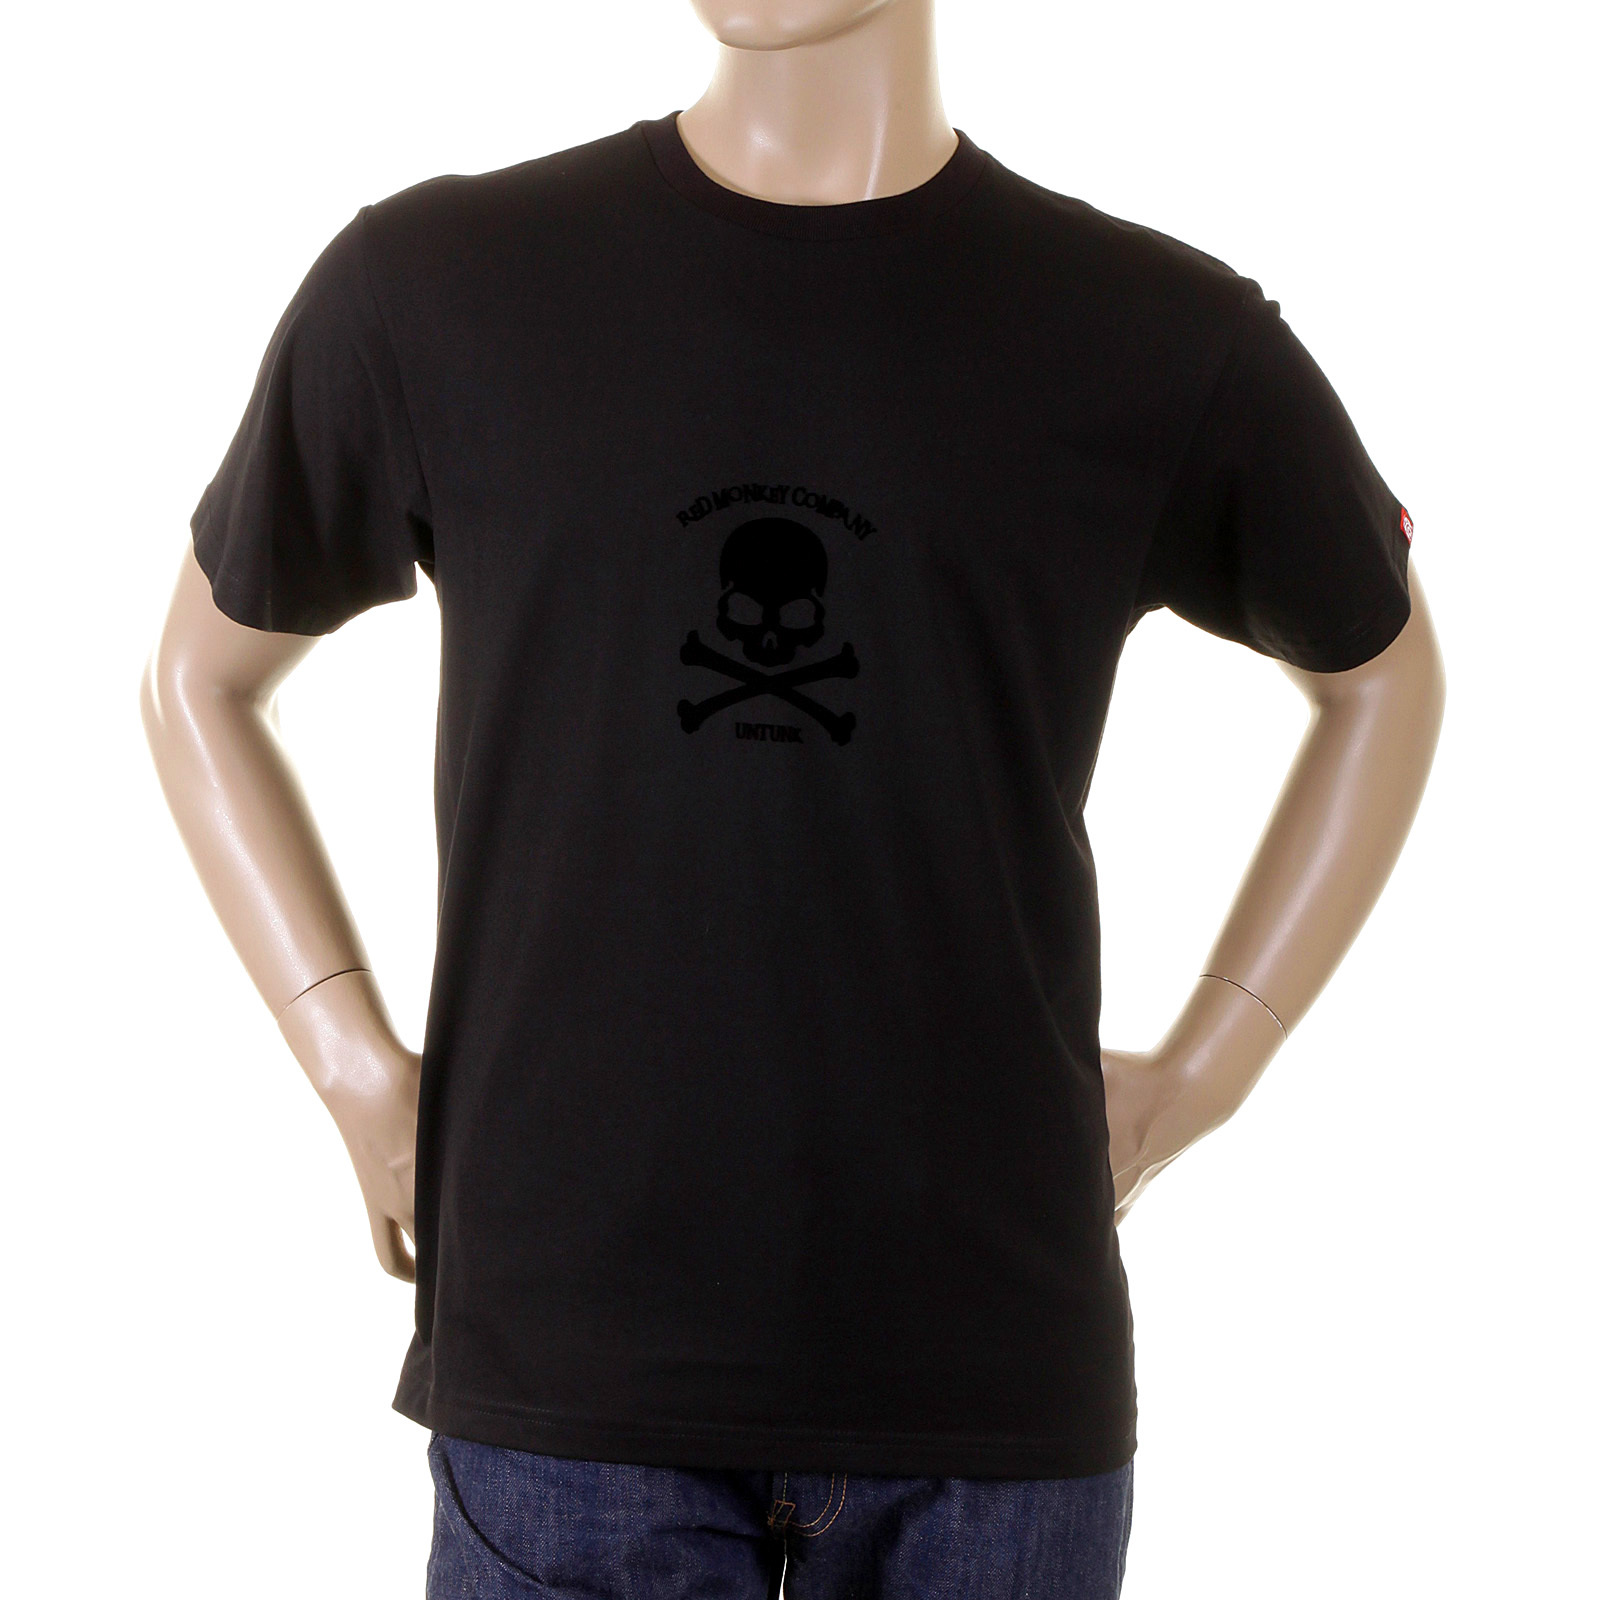 f22cfa0c79cf RMC Regular Fit Crew Neck Short Sleeve T-Shirt with Flock Printed Black  Skull and